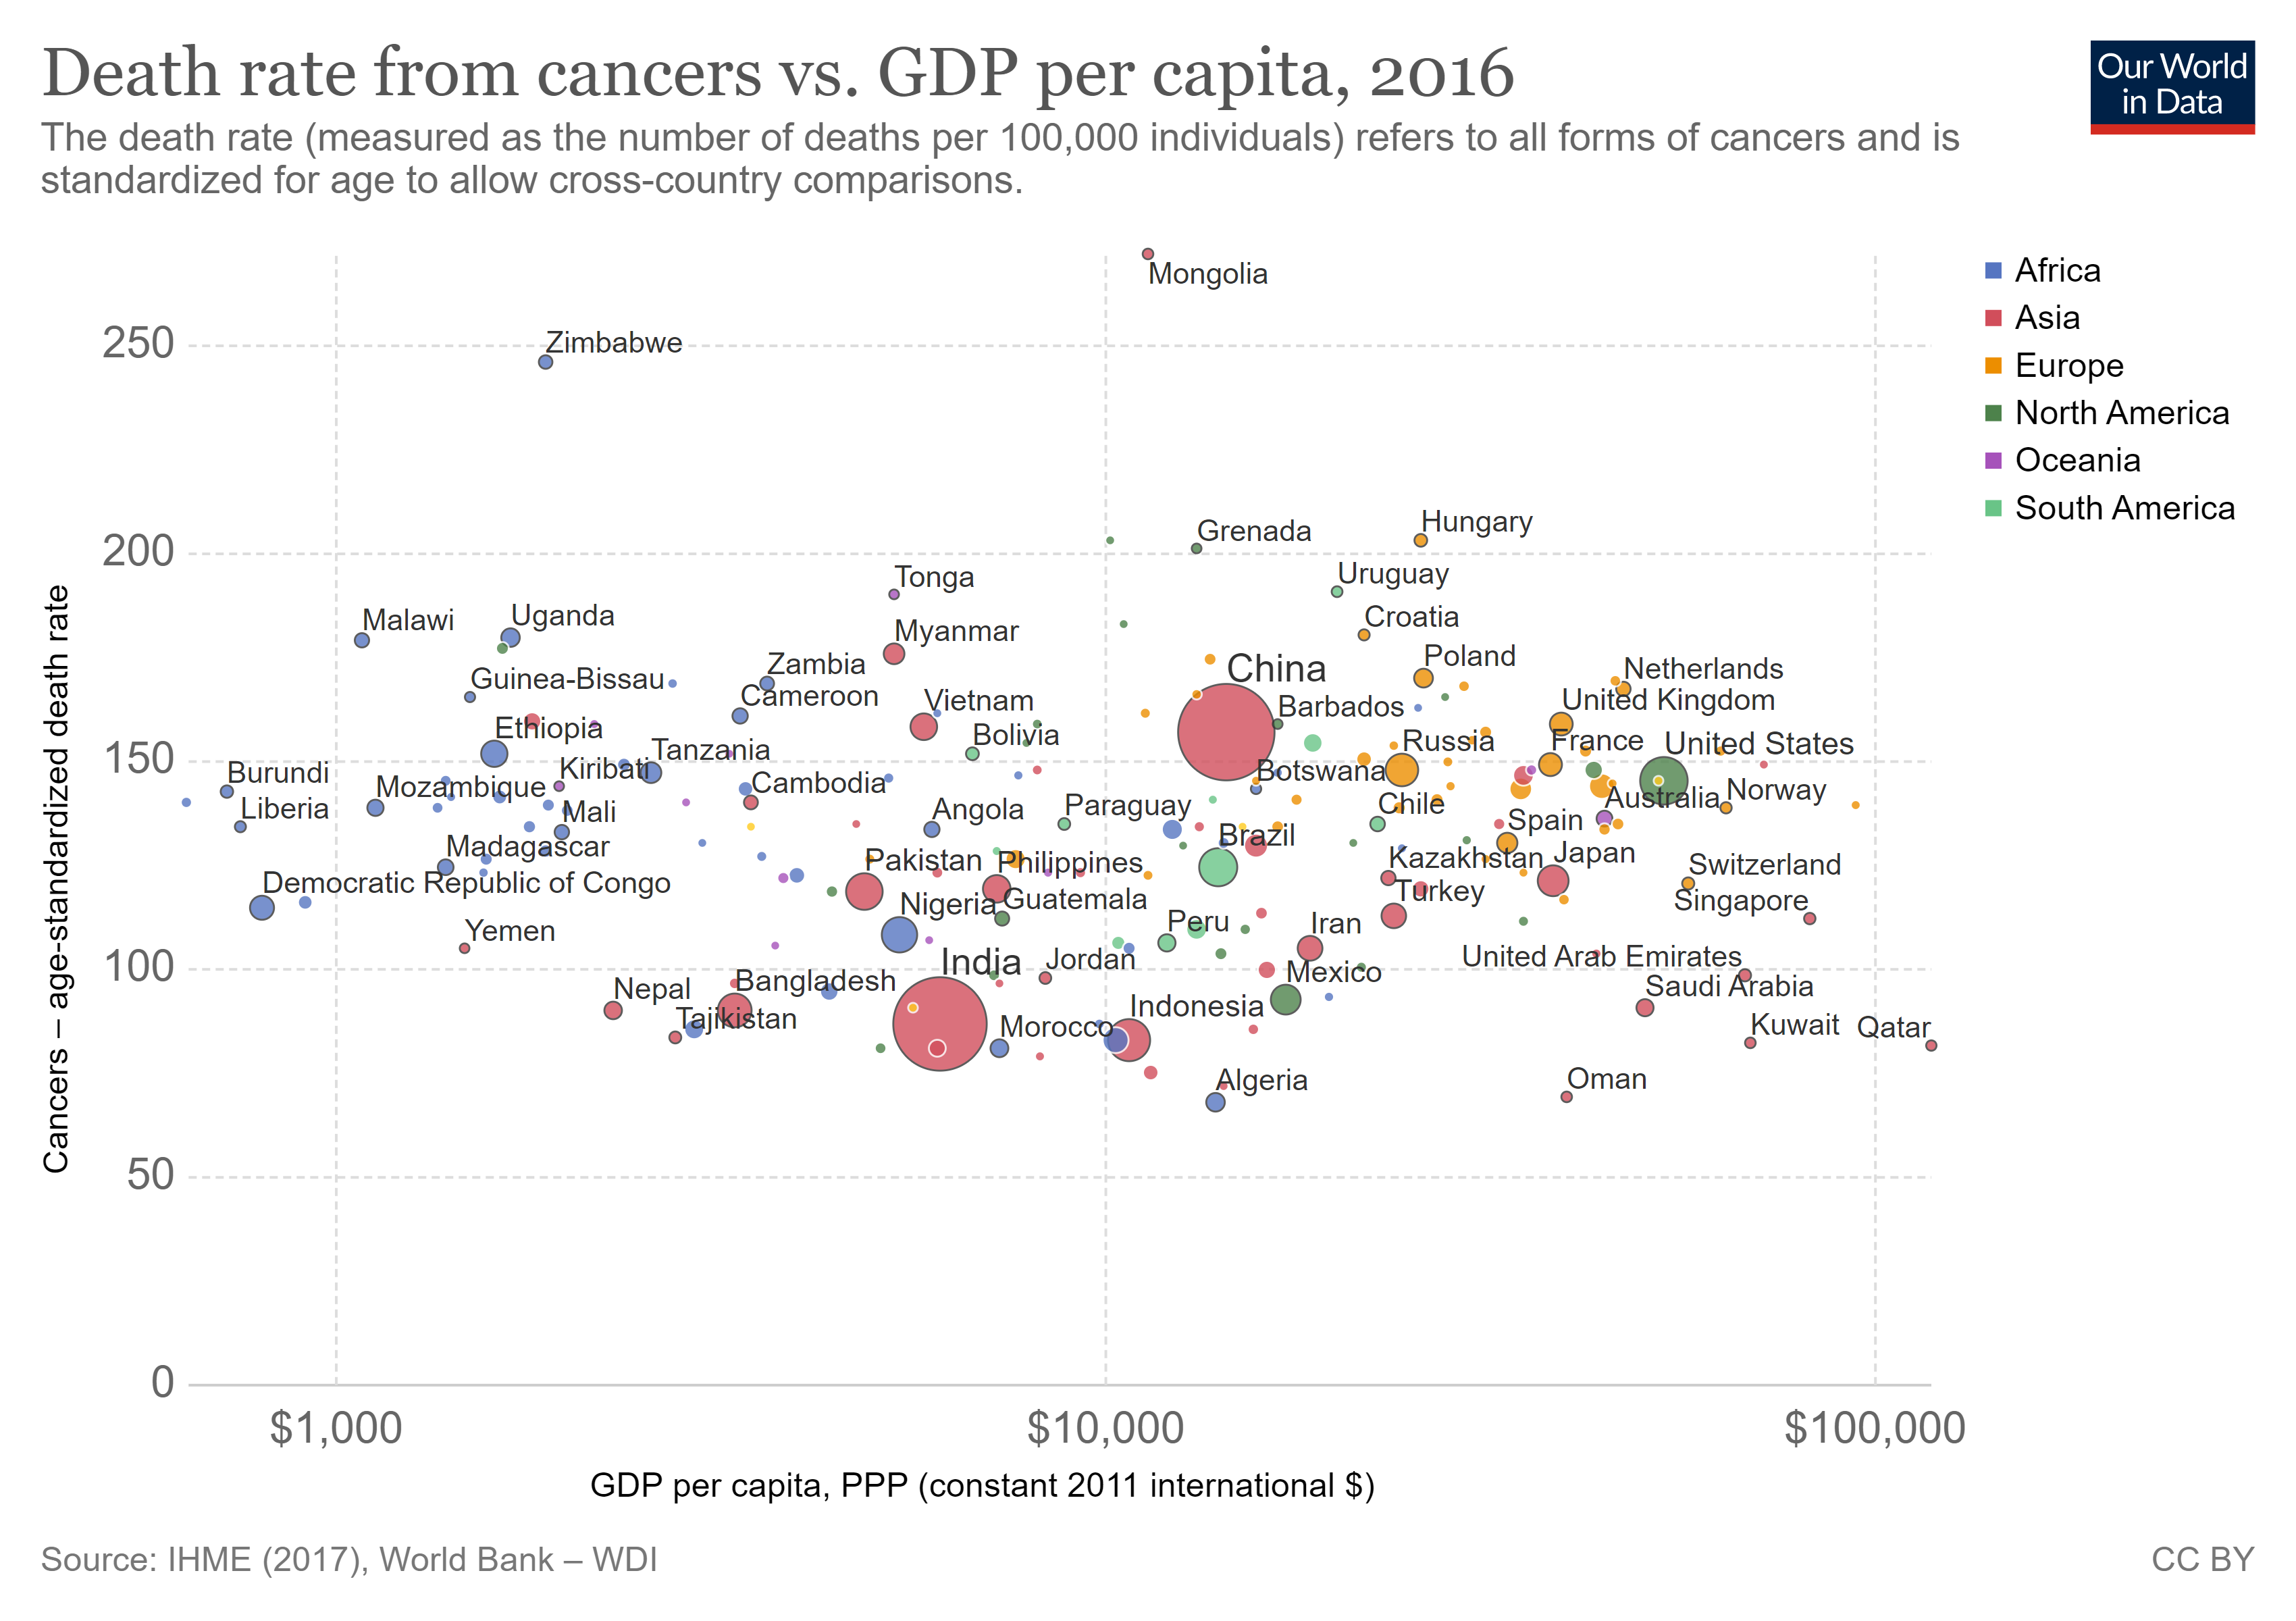 Death rate from cancer vs GDP per capita, 2016